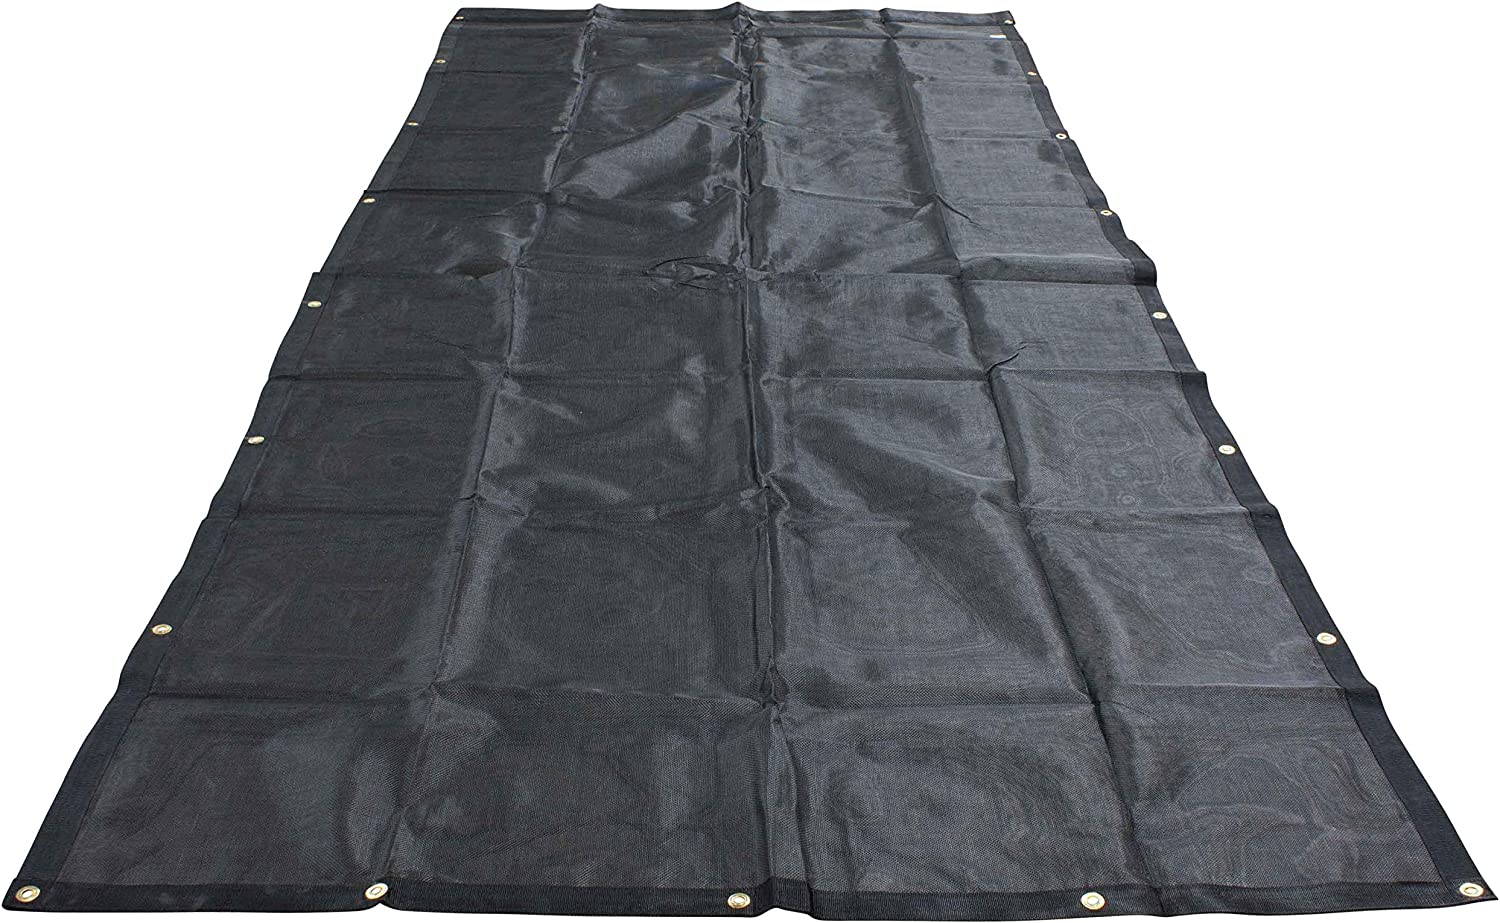 Mytee Products 7 x 12 Dump Truck Vinyl Coated Mesh Tarps Cover with 6 Inch 18oz Double Pocket